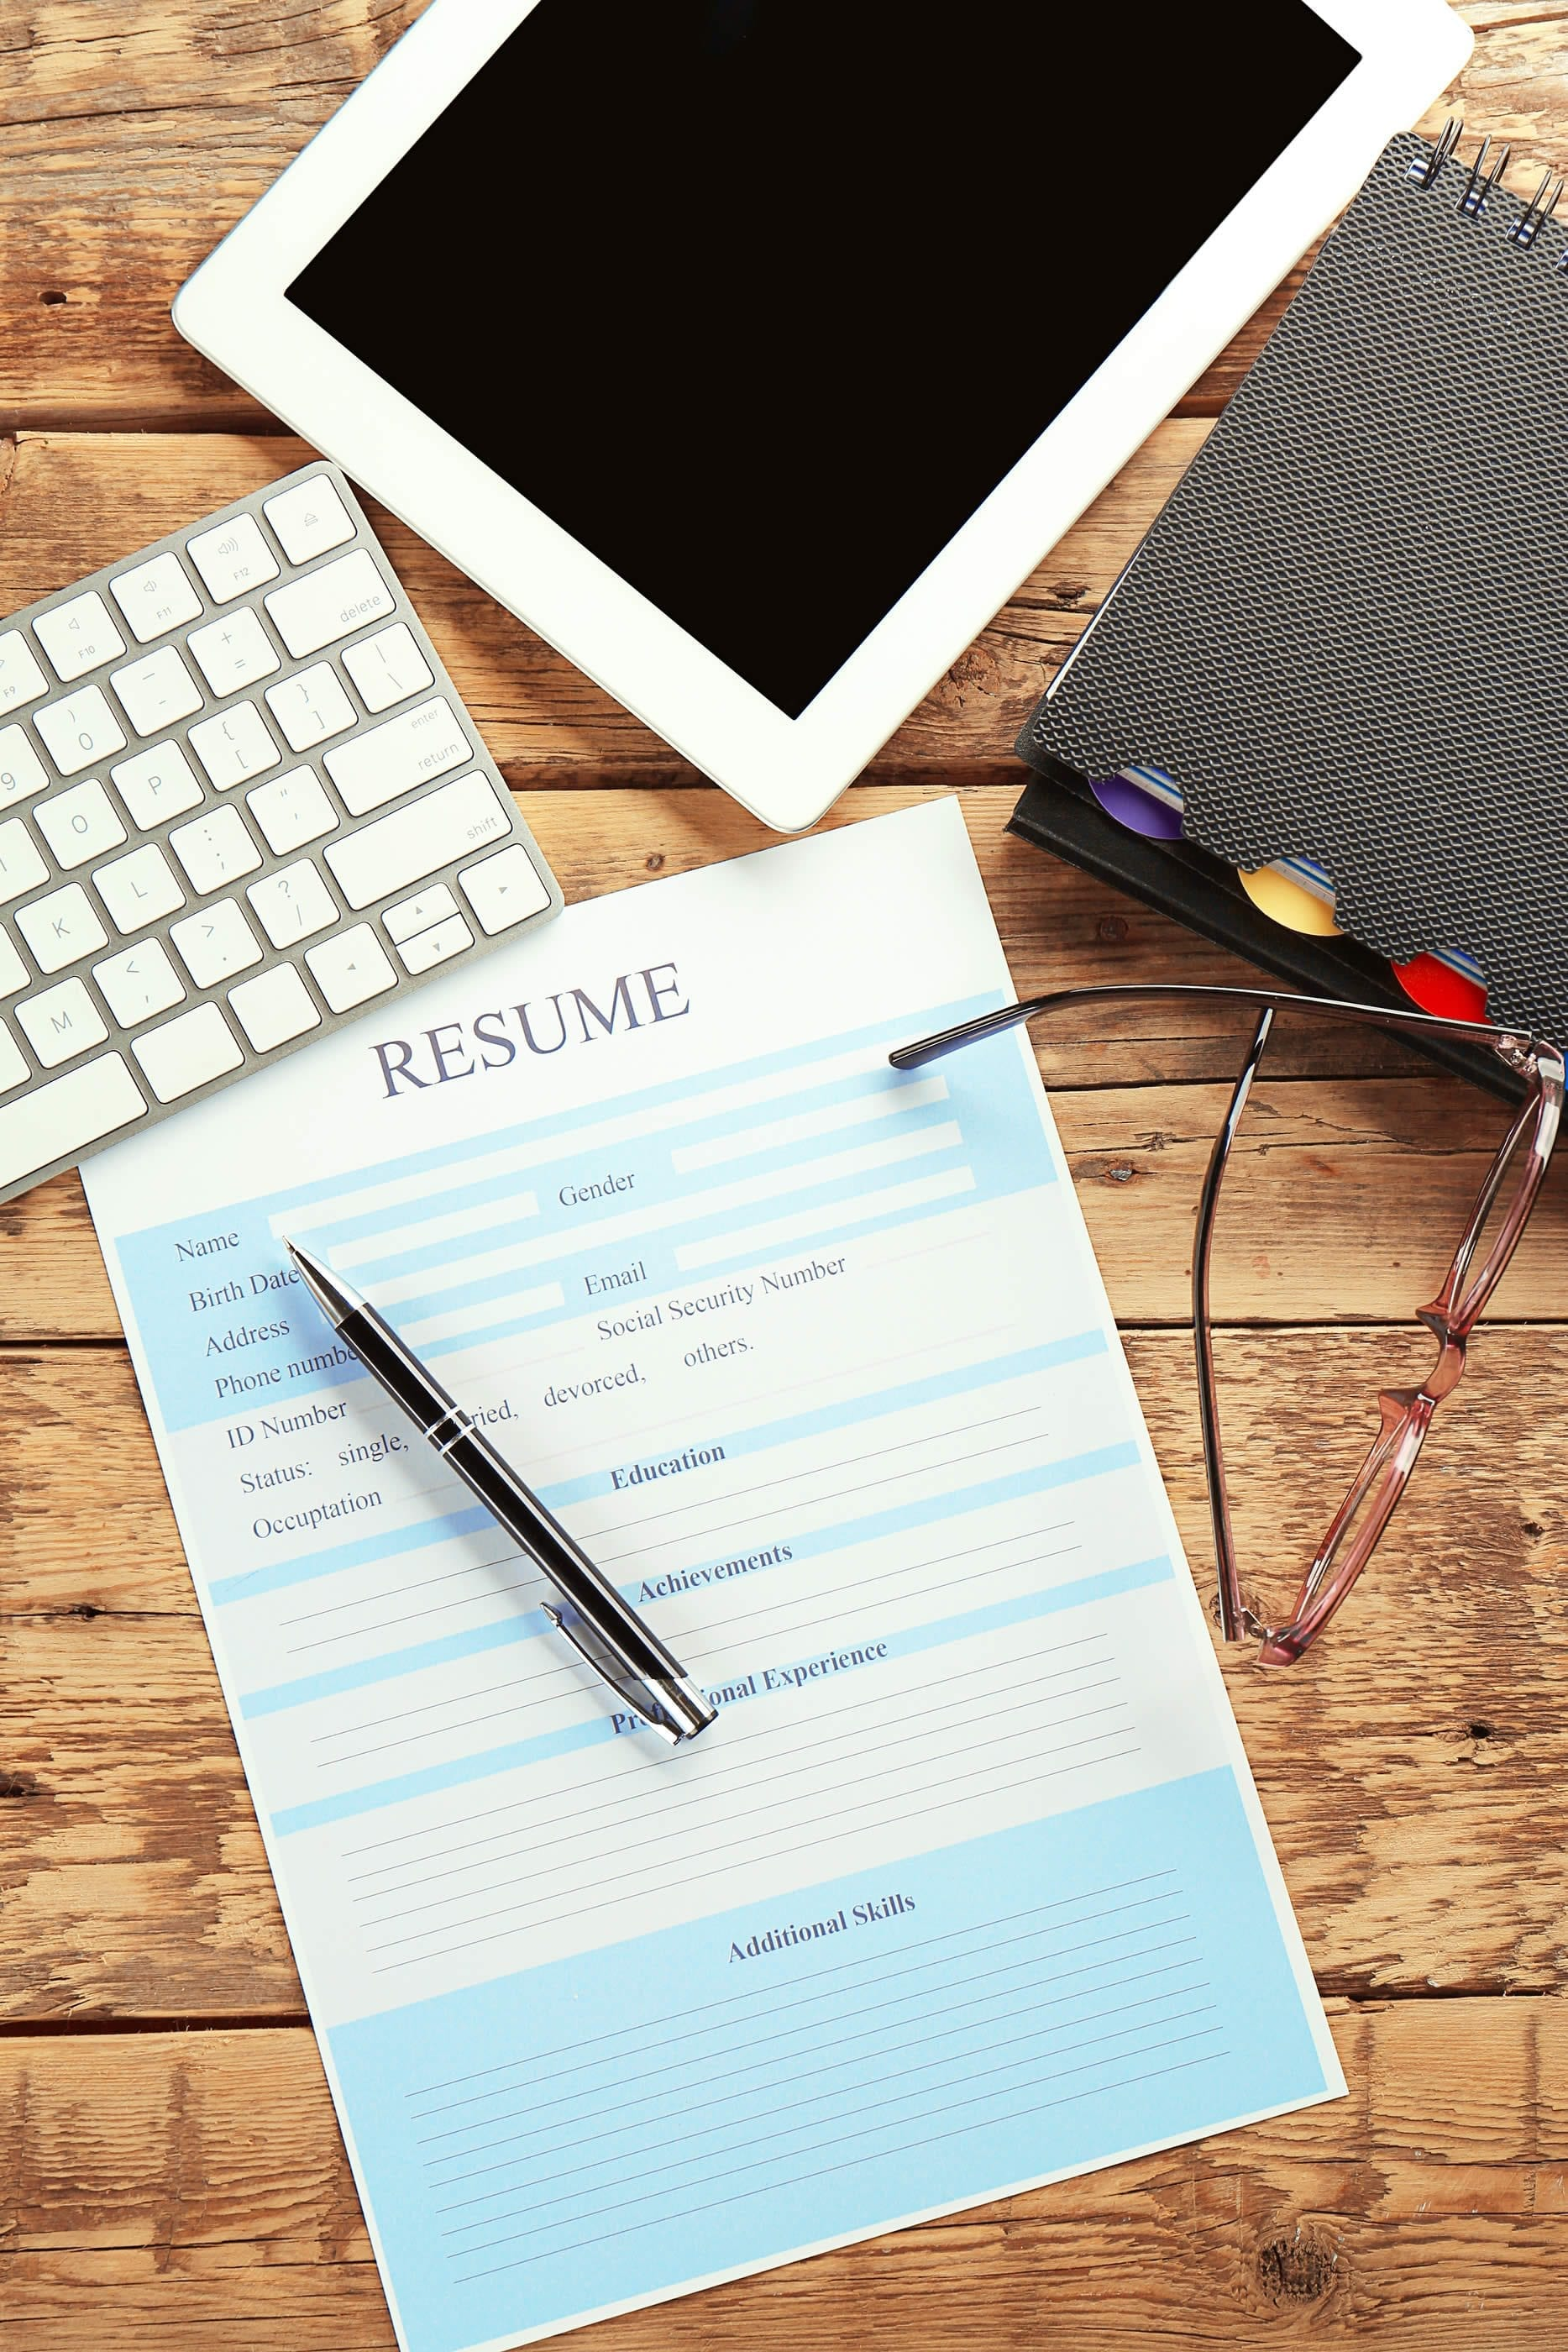 Finding Balance: Who is Your Resume Really About?